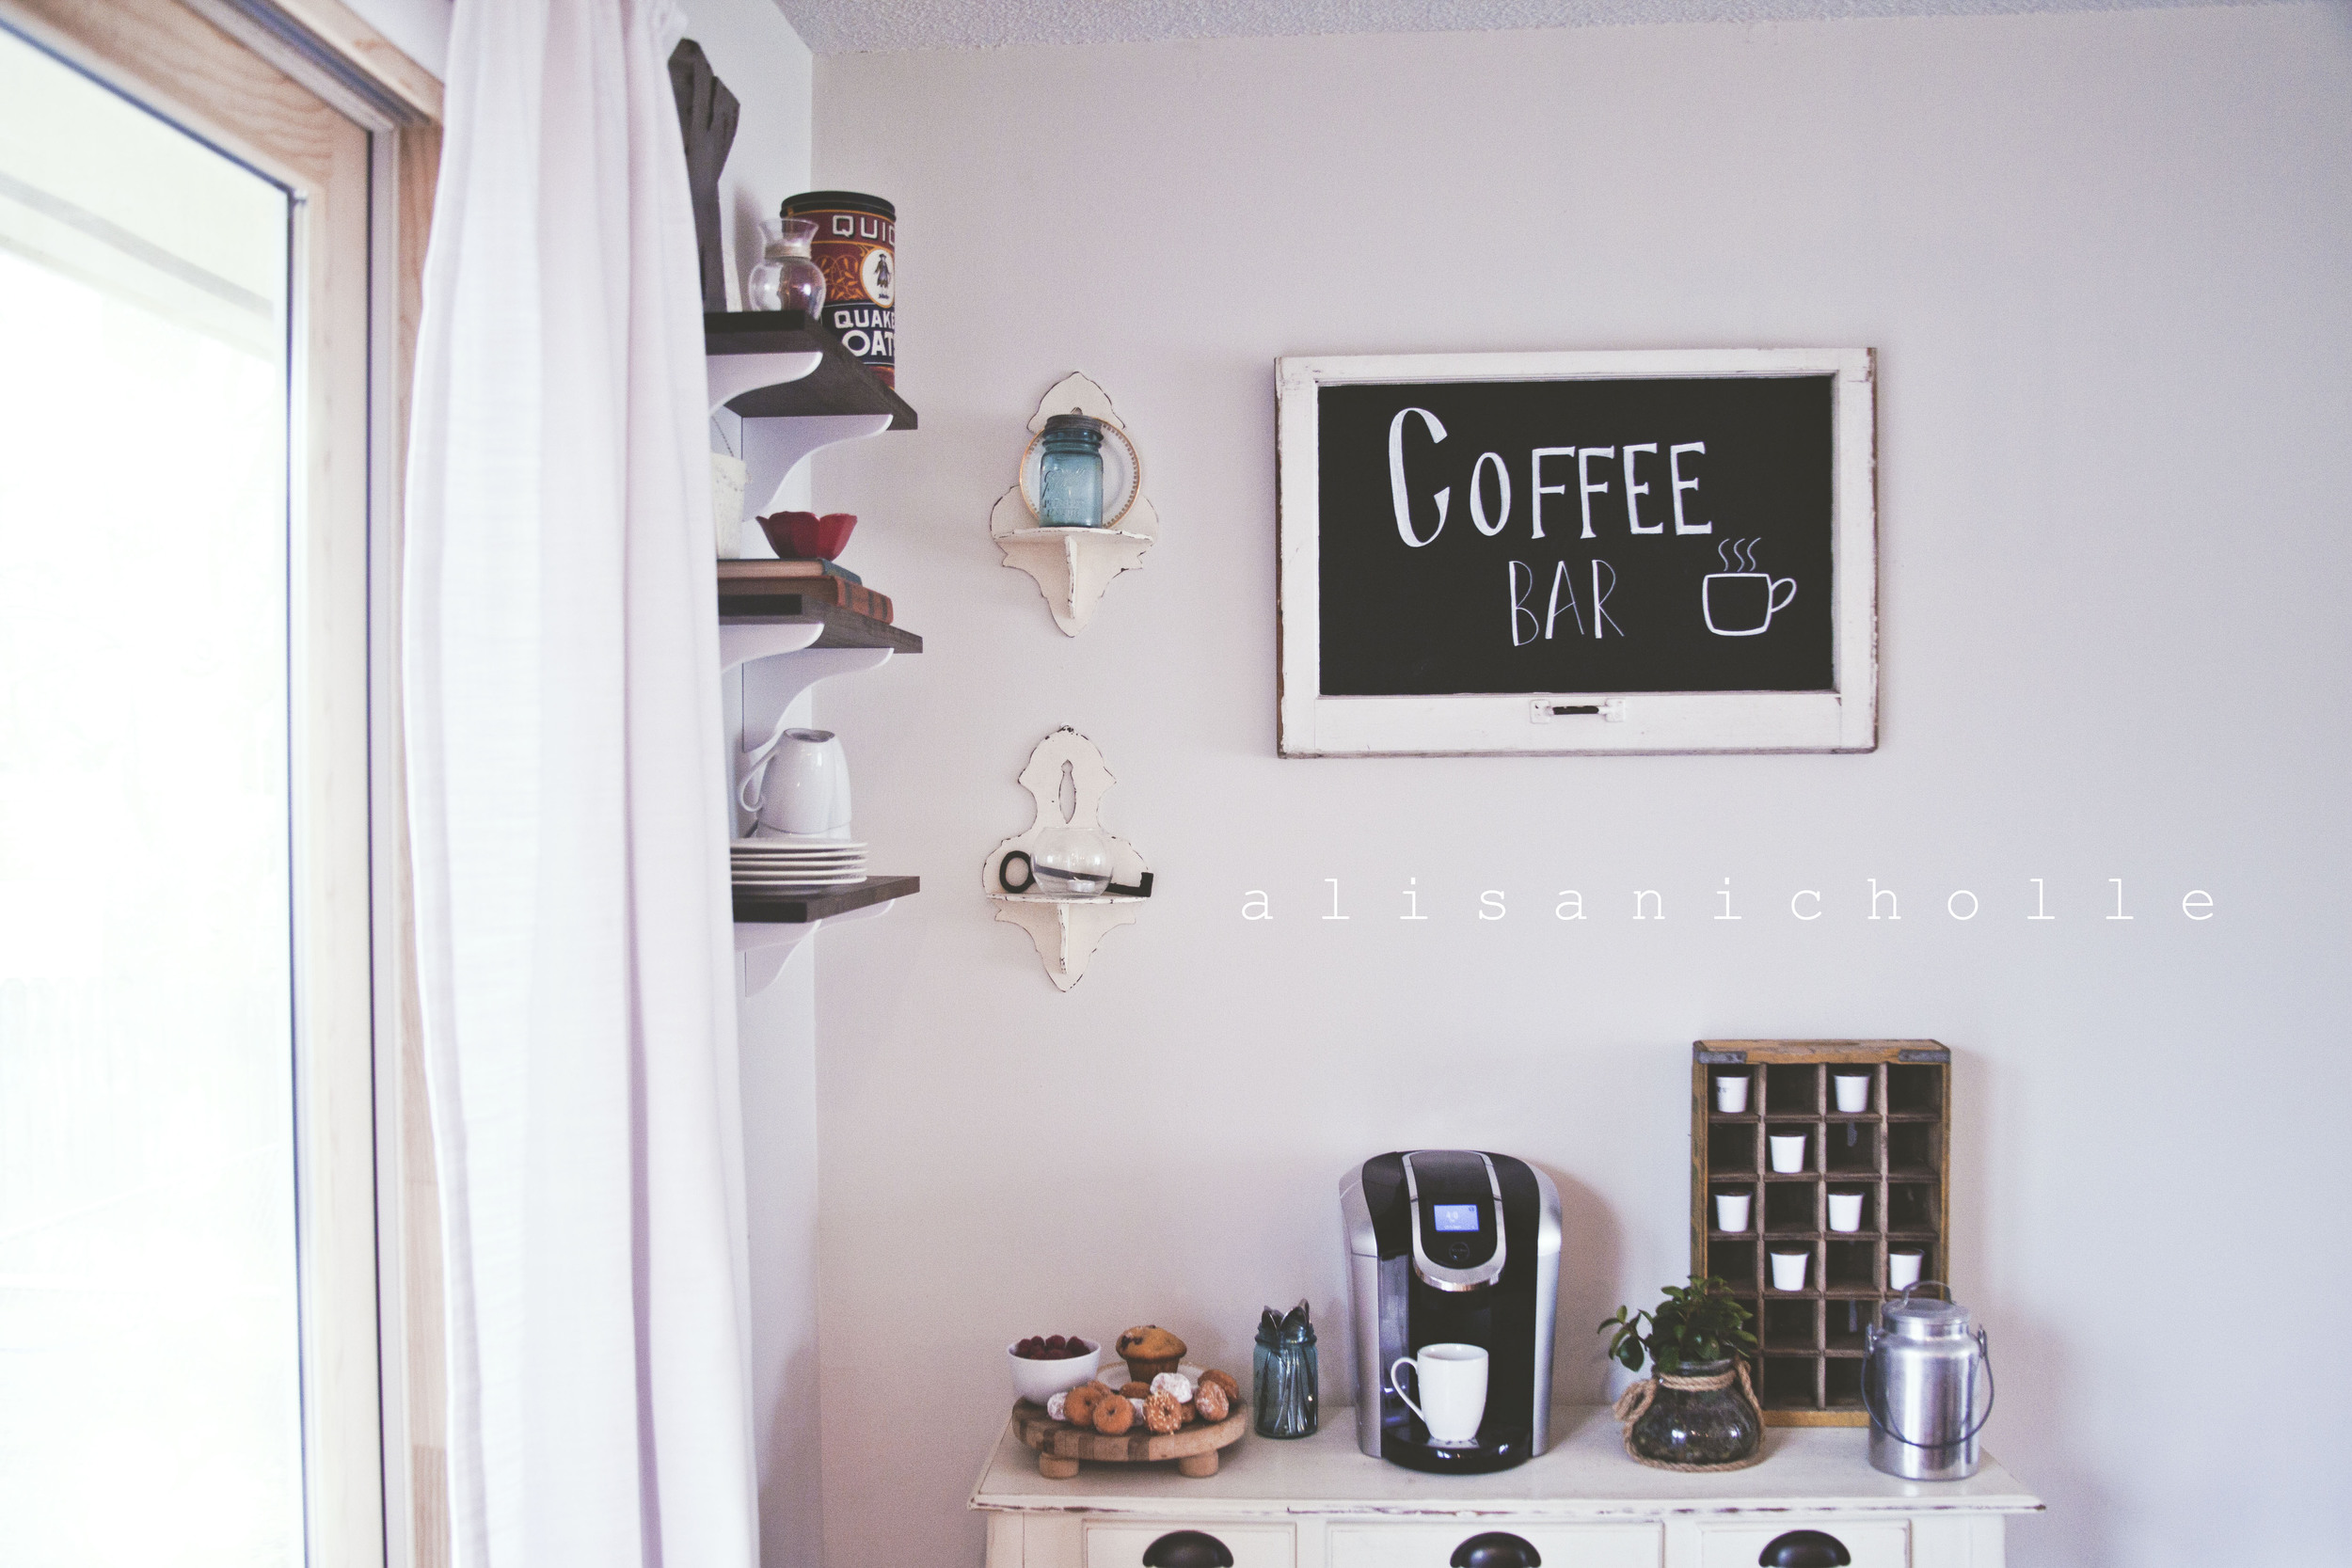 The coffee bar...no words needed.